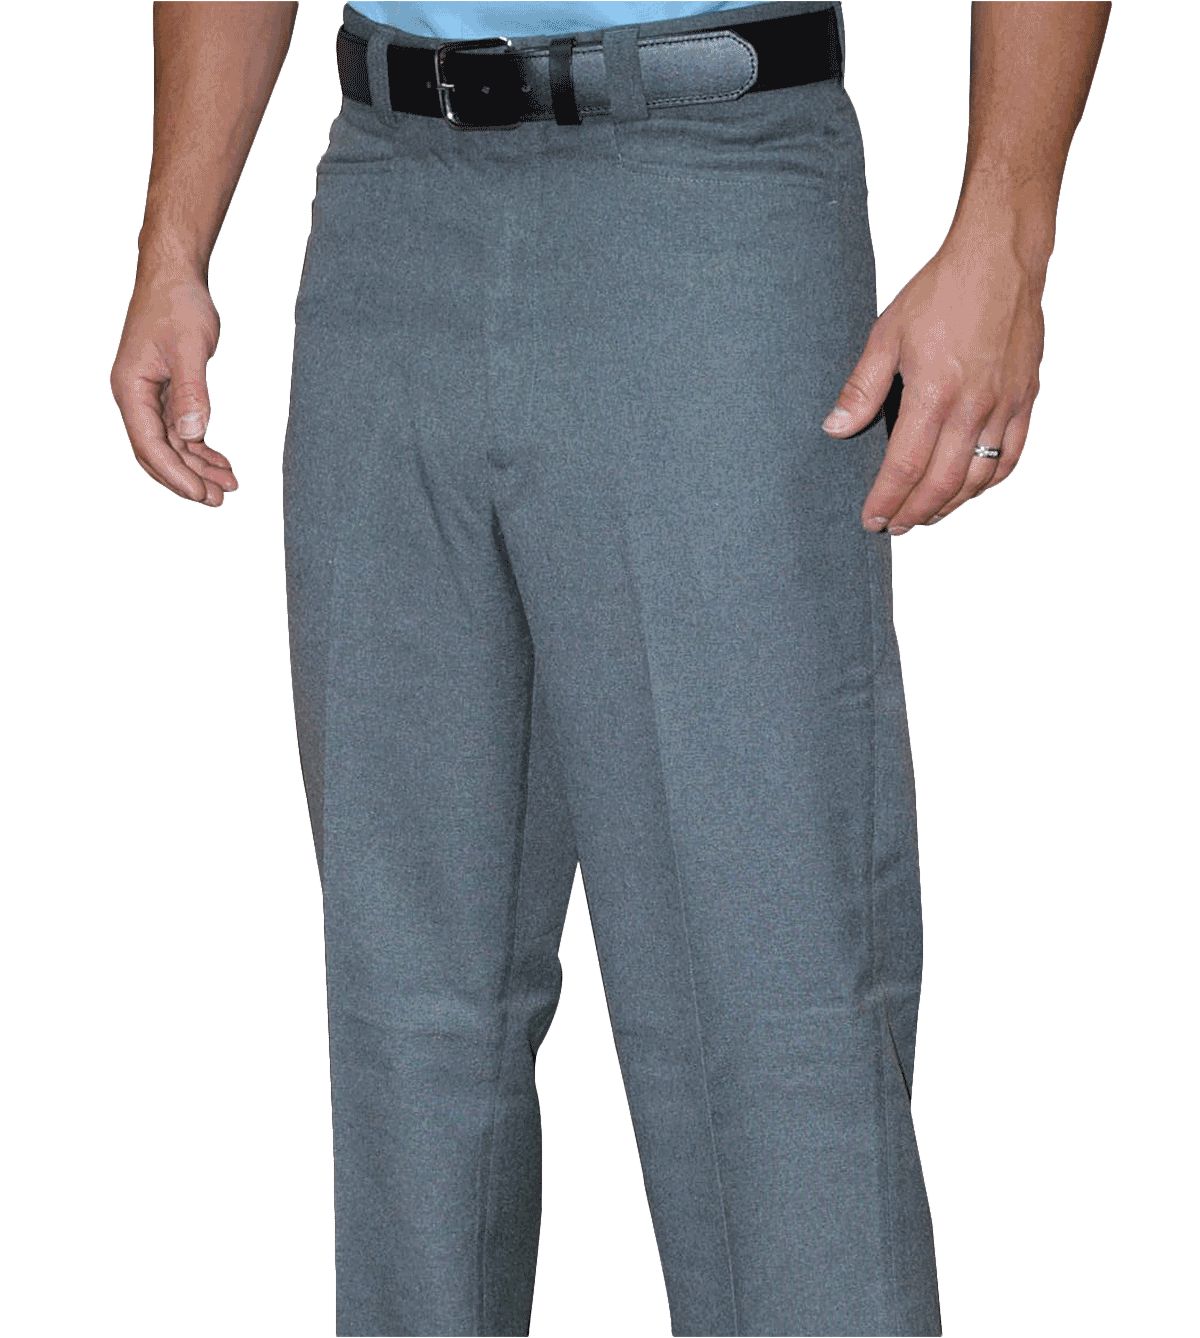 SMITTY Flat Front Combo Pant